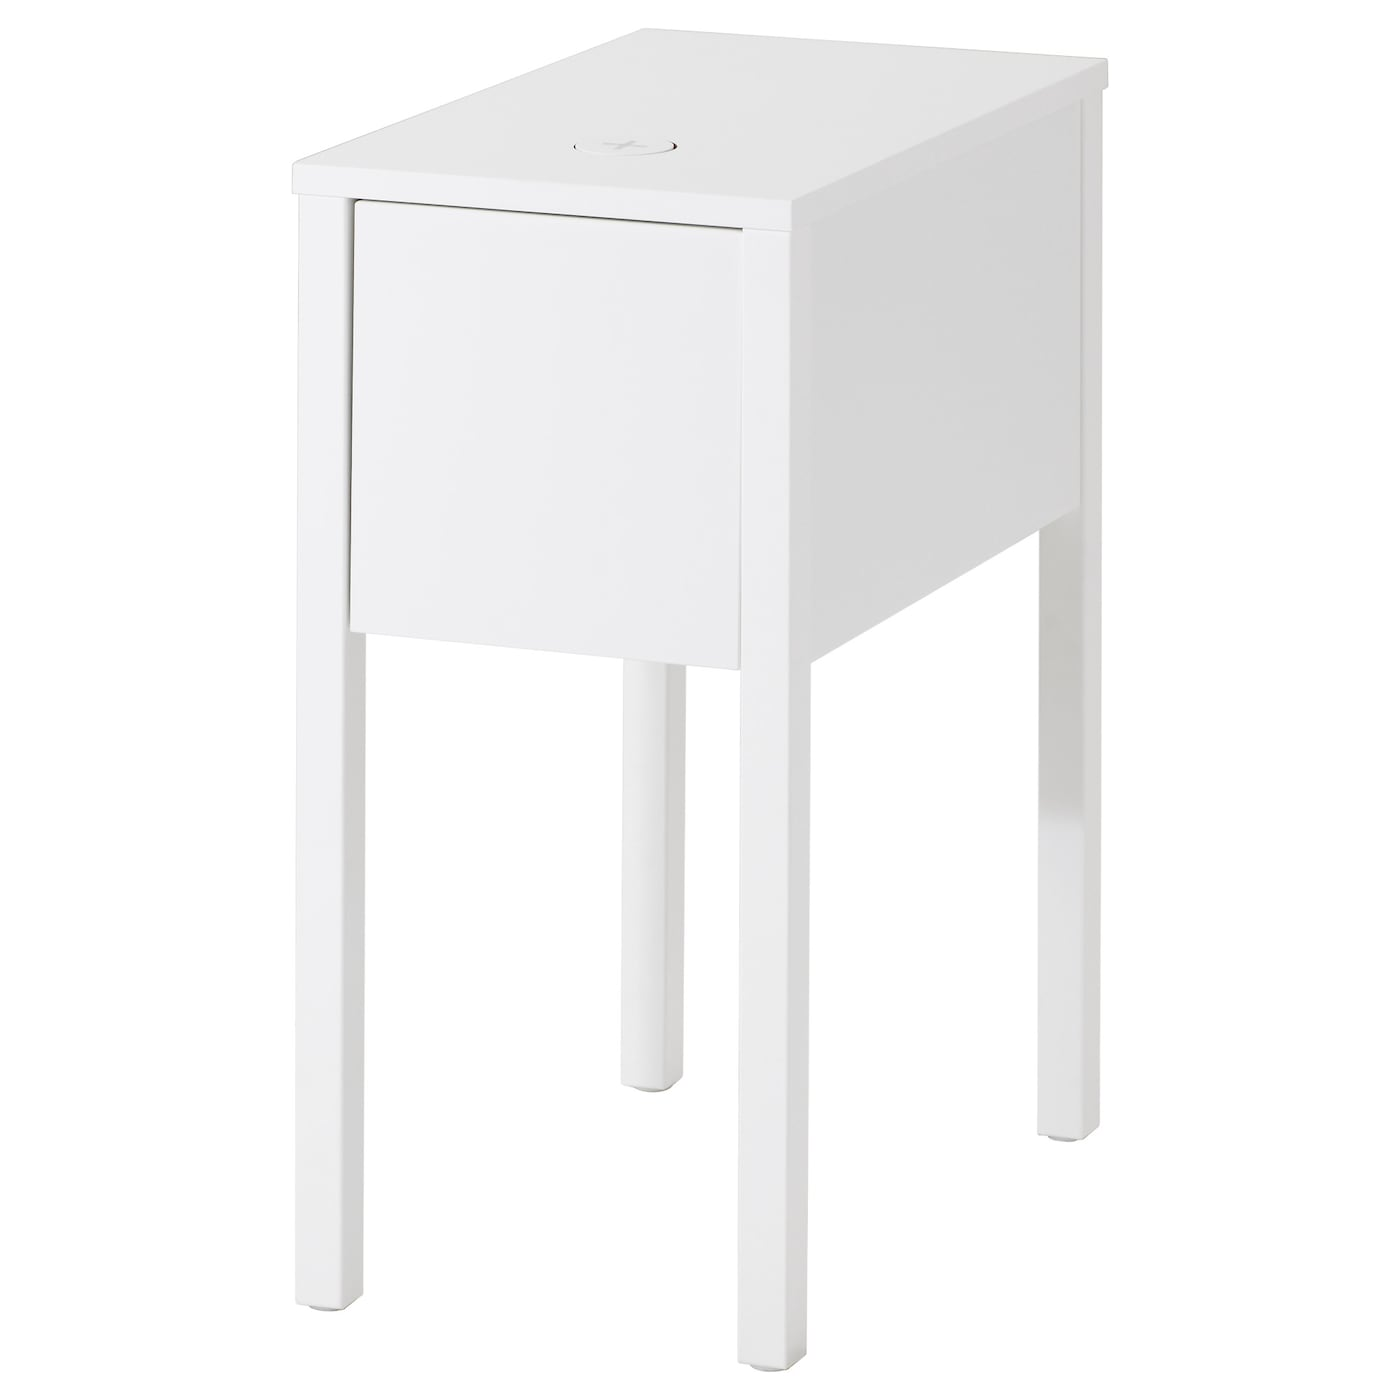 IKEA NORDLI bedside table w wireless charging